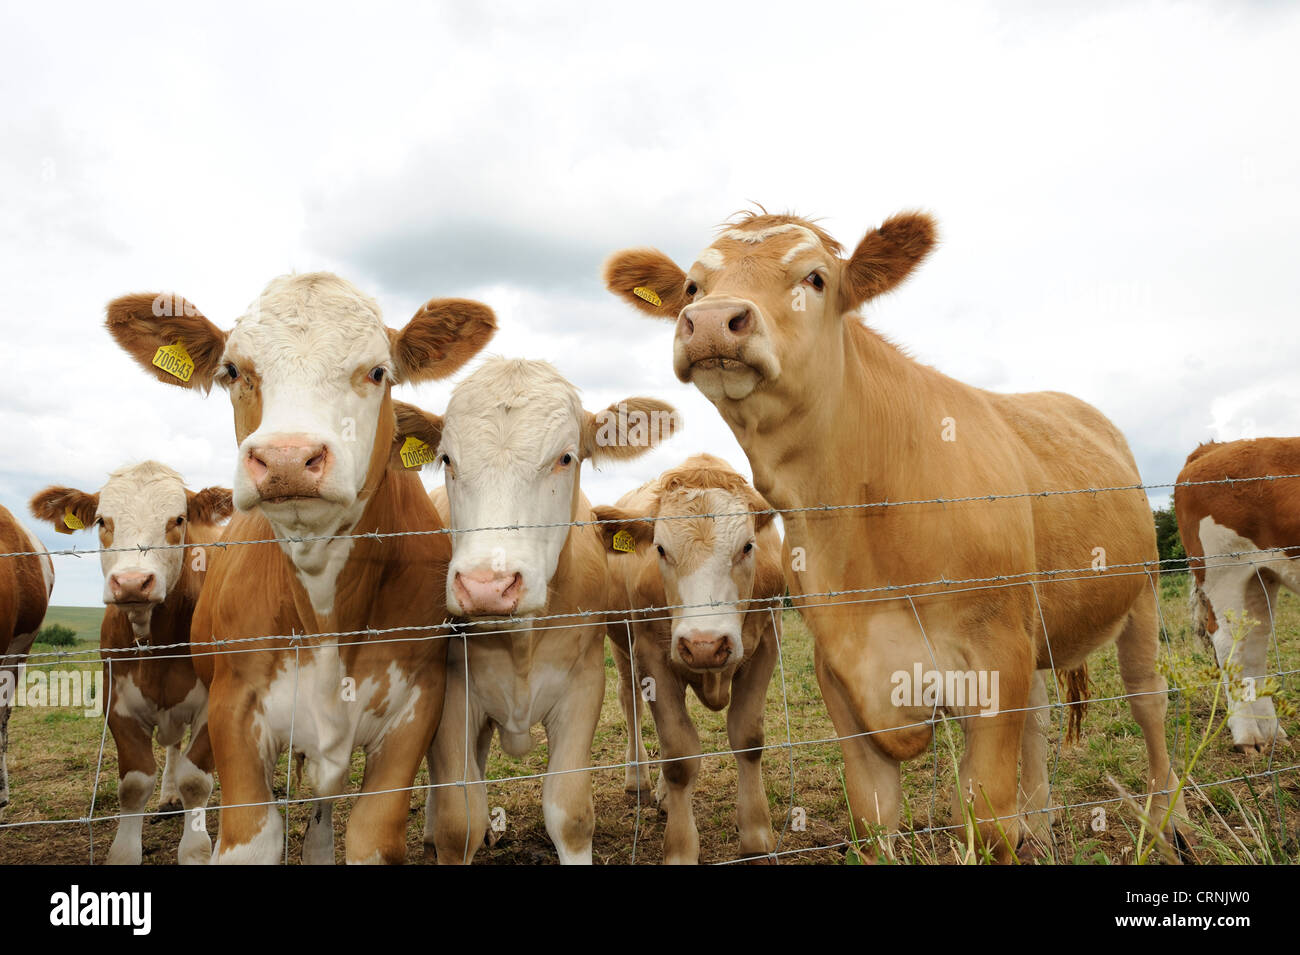 Cattle looking over a barbed wire fence. - Stock Image